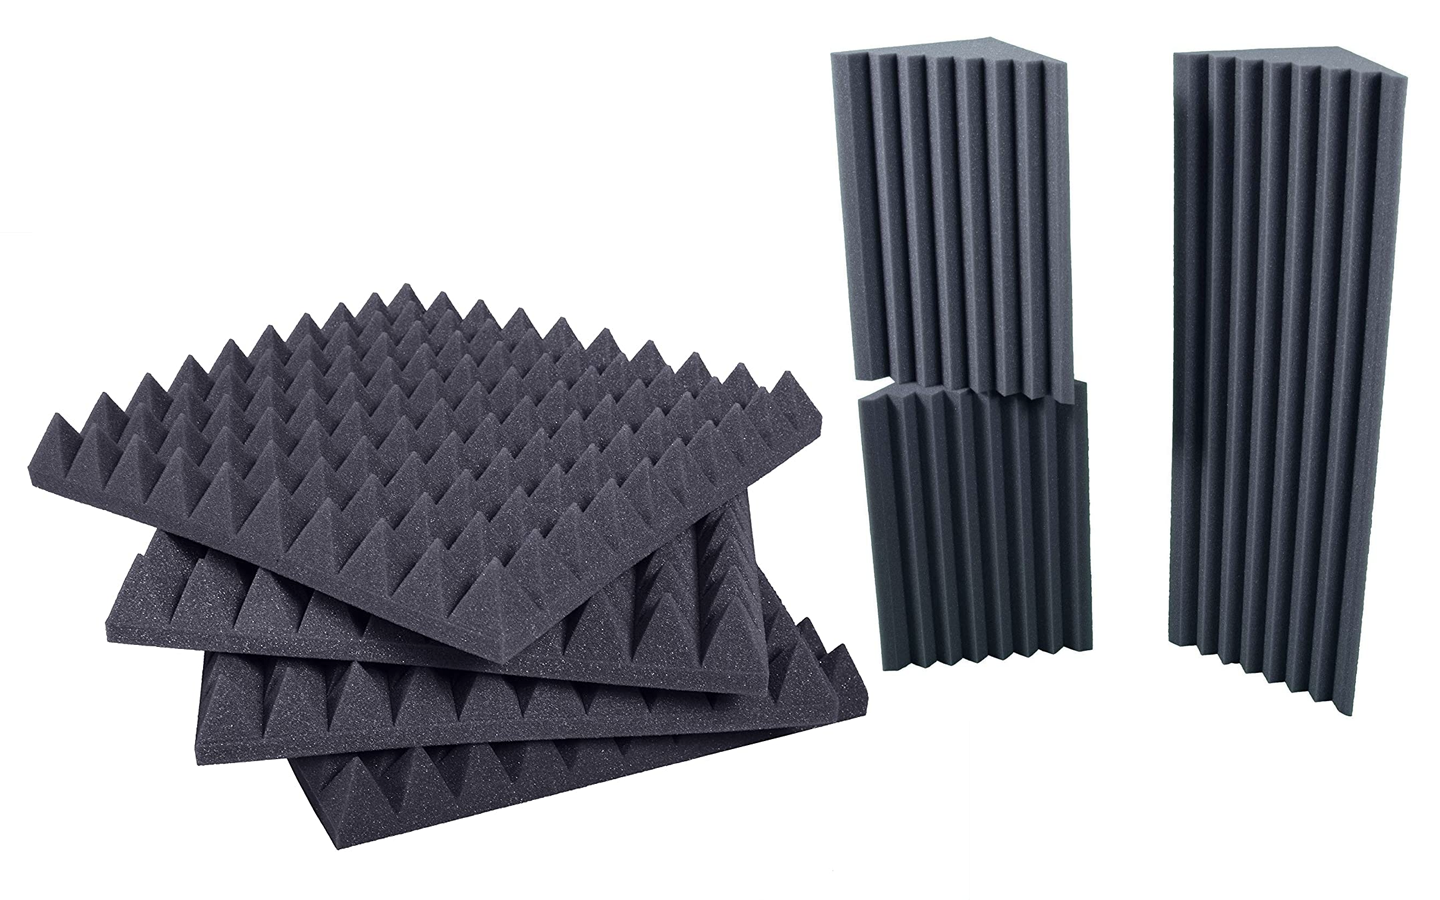 Sound absorbing panels and bass traps